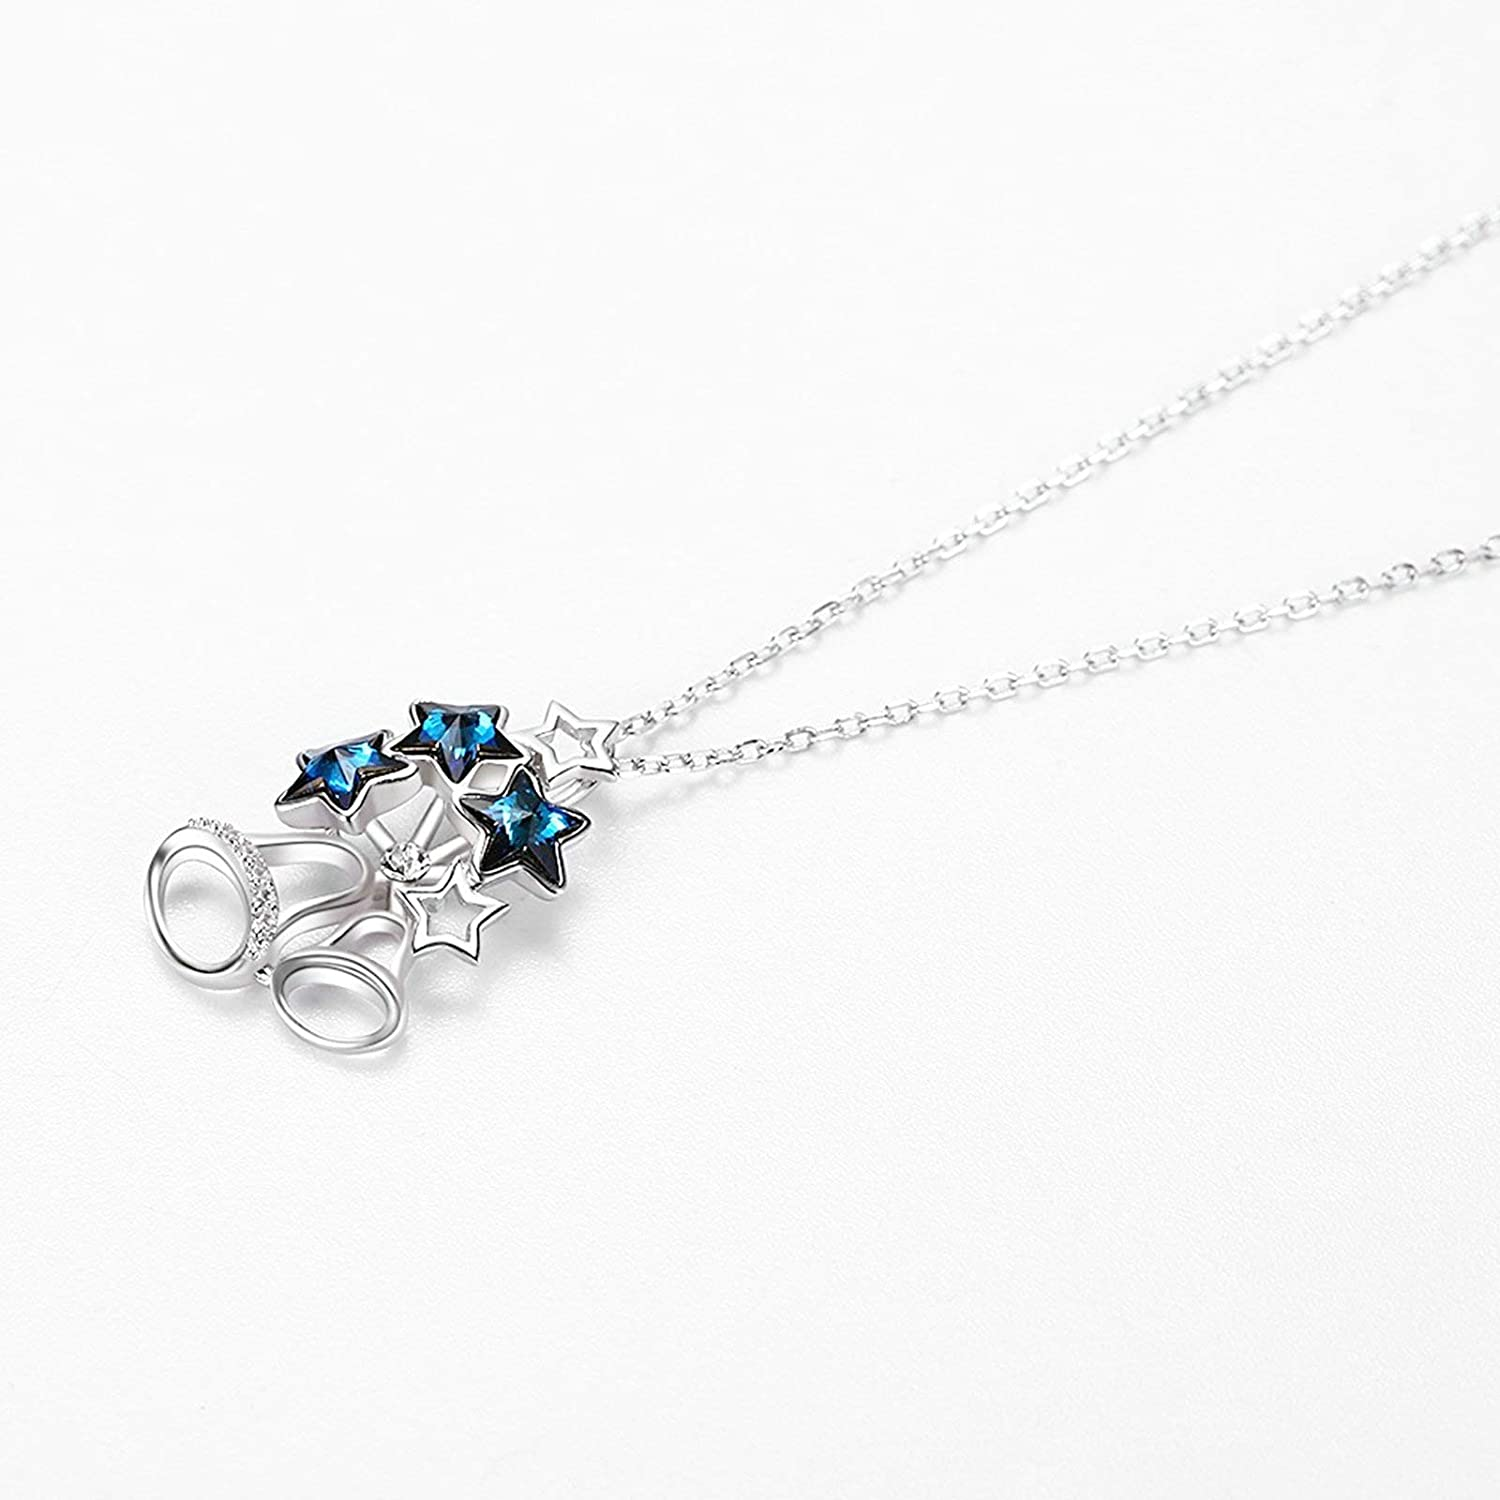 EoCot Women Necklace 925 Sterling Silver Christmas Bell Pendant with Blue CZ Crystals Gifts for Women Girls